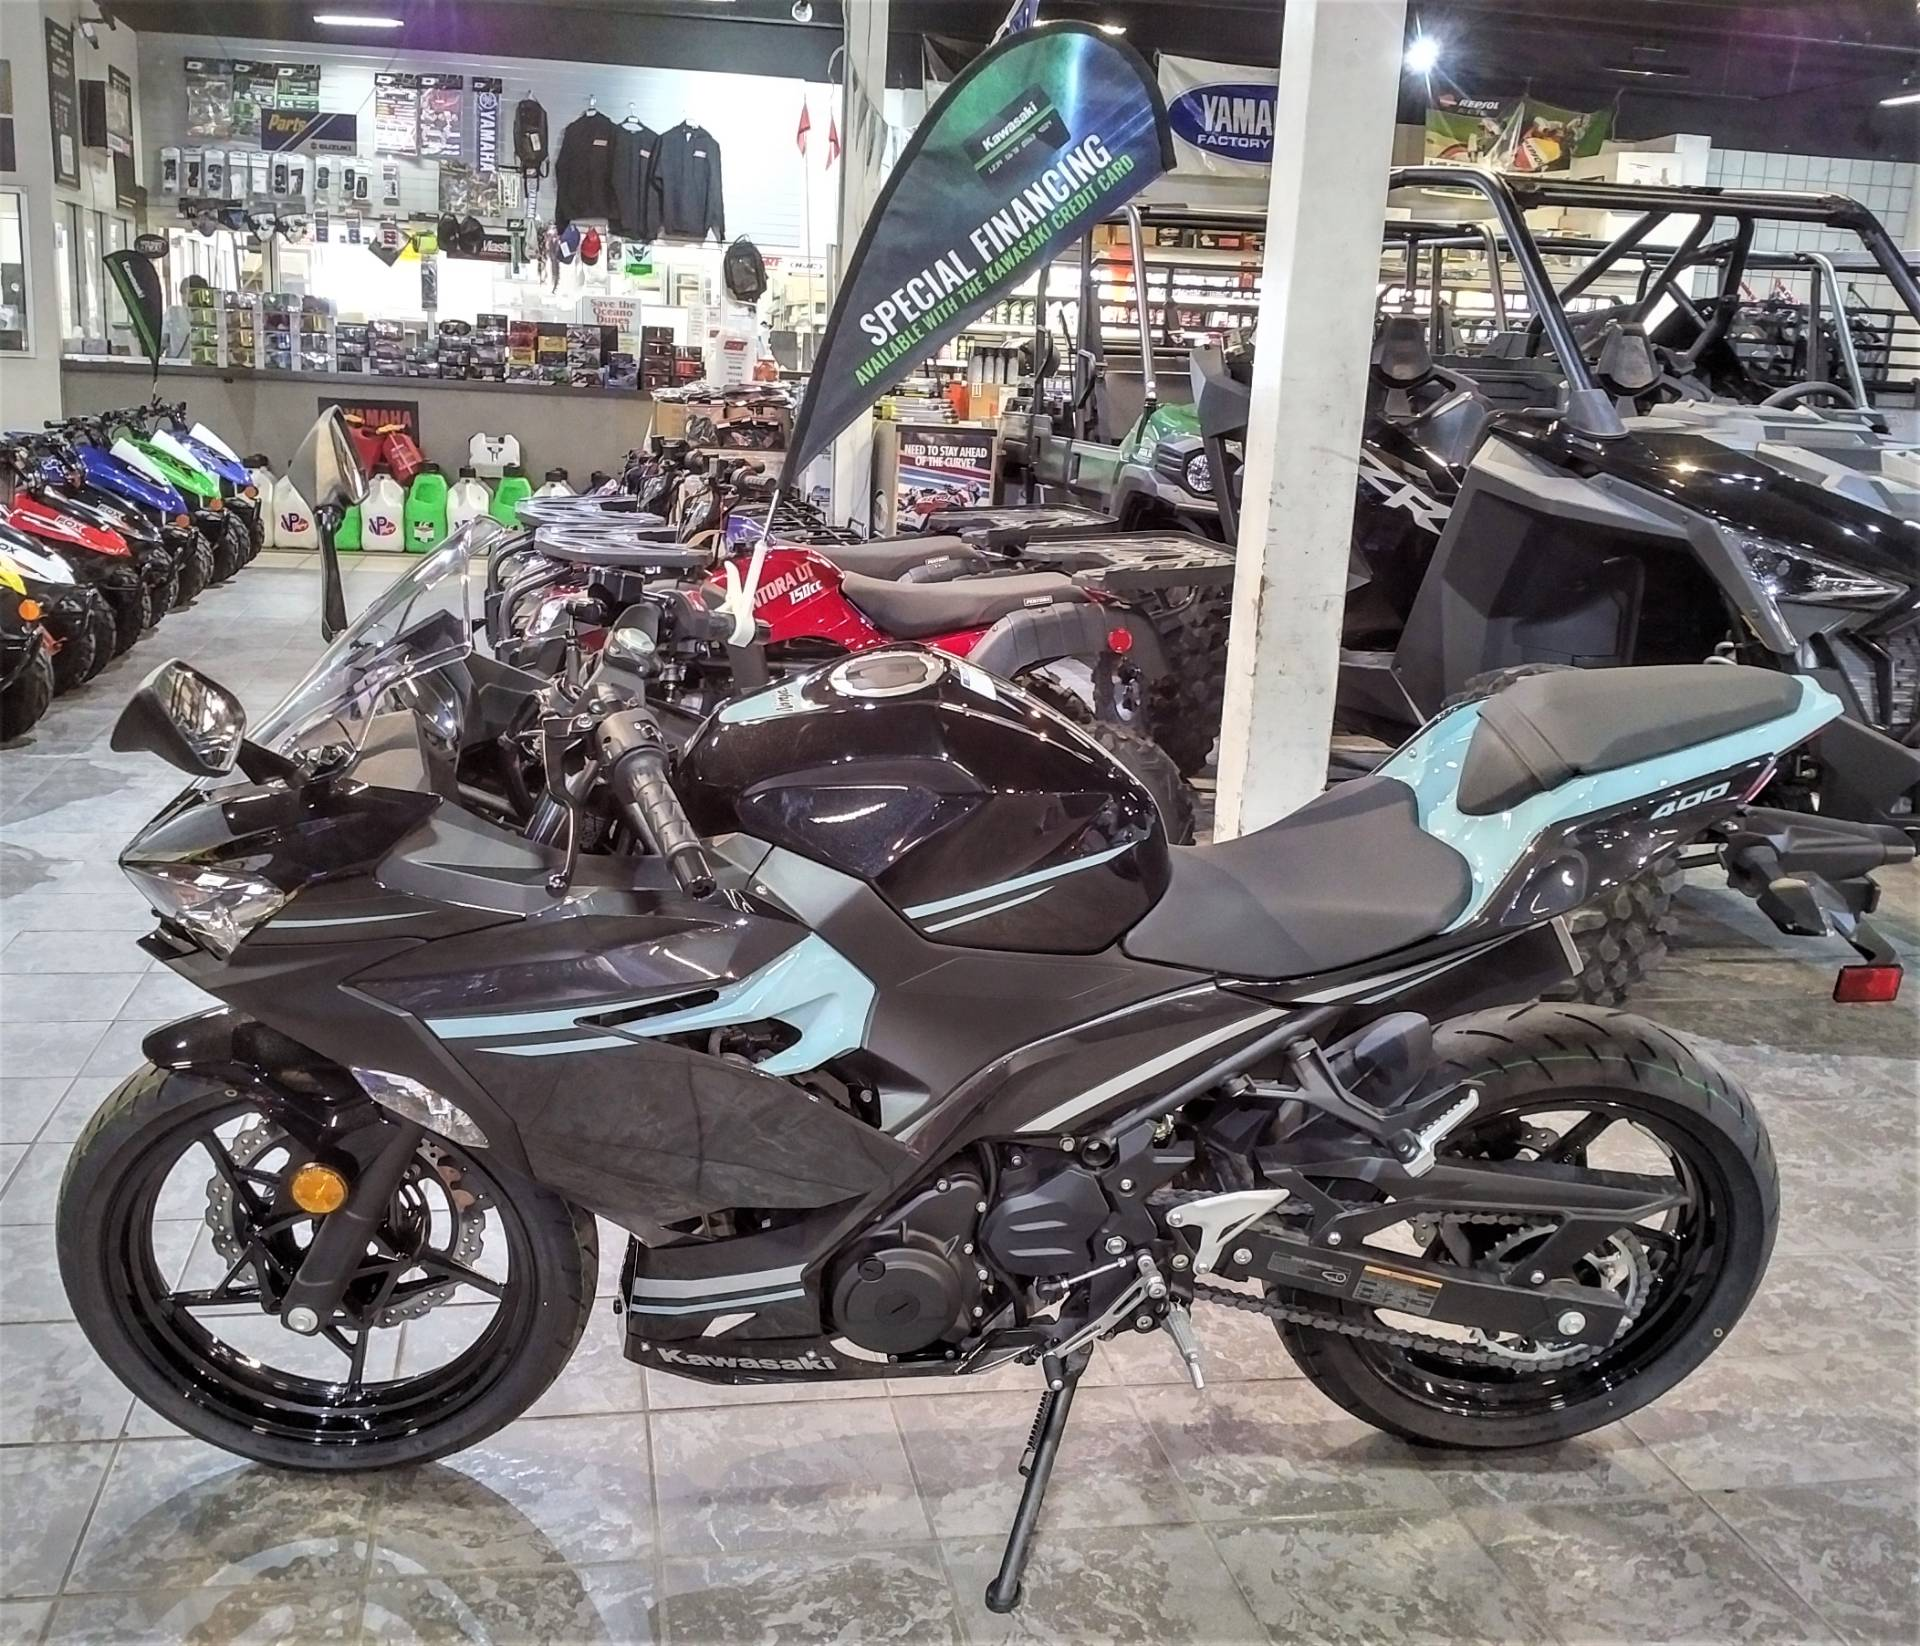 2020 Kawasaki Ninja 400 in Salinas, California - Photo 3